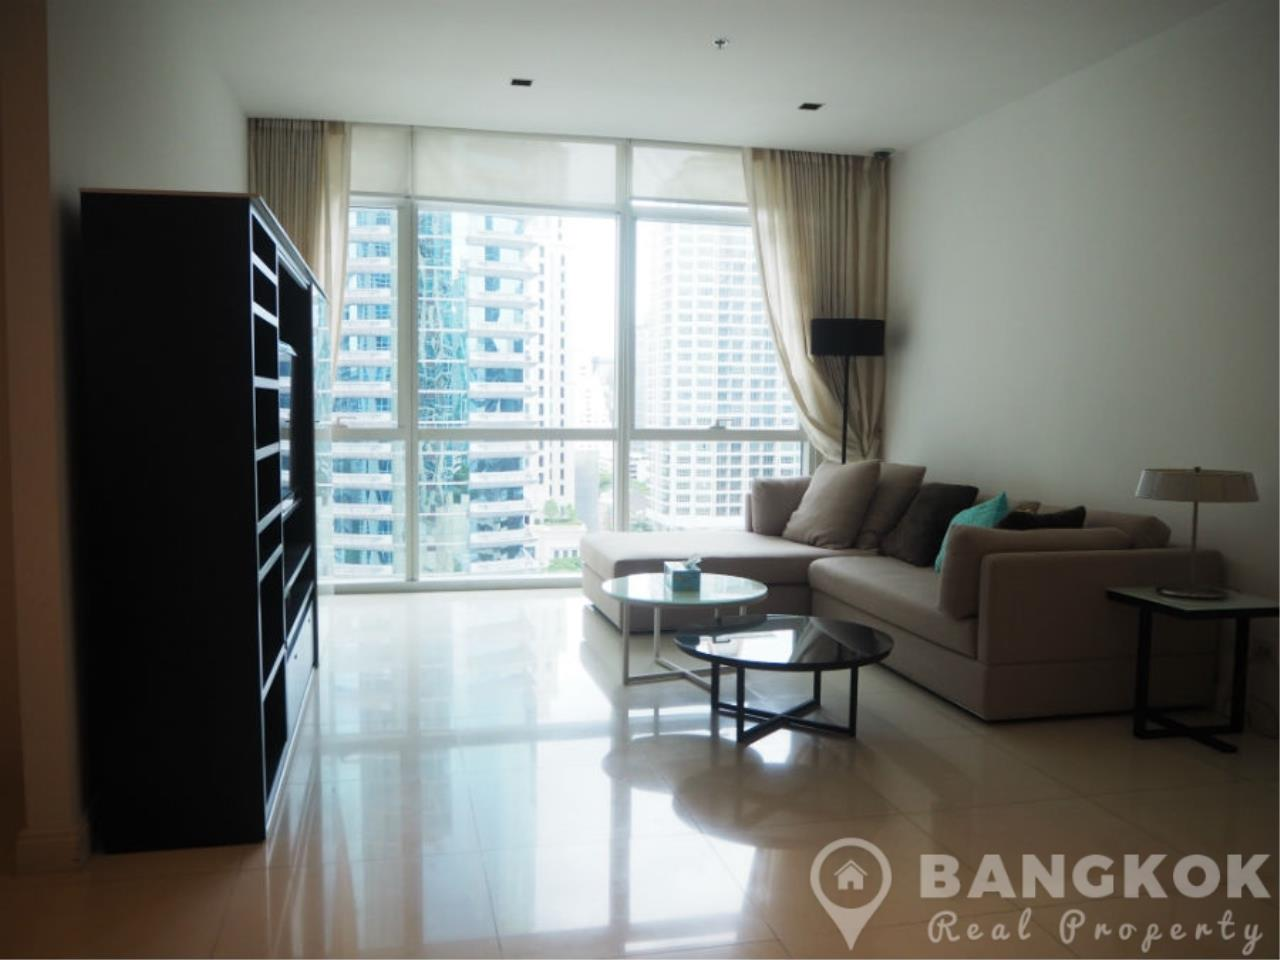 Bangkok Real Property Agency's Athenee Residence | Spacious Modern 2 Bed 2 Bath with Great City Views 2